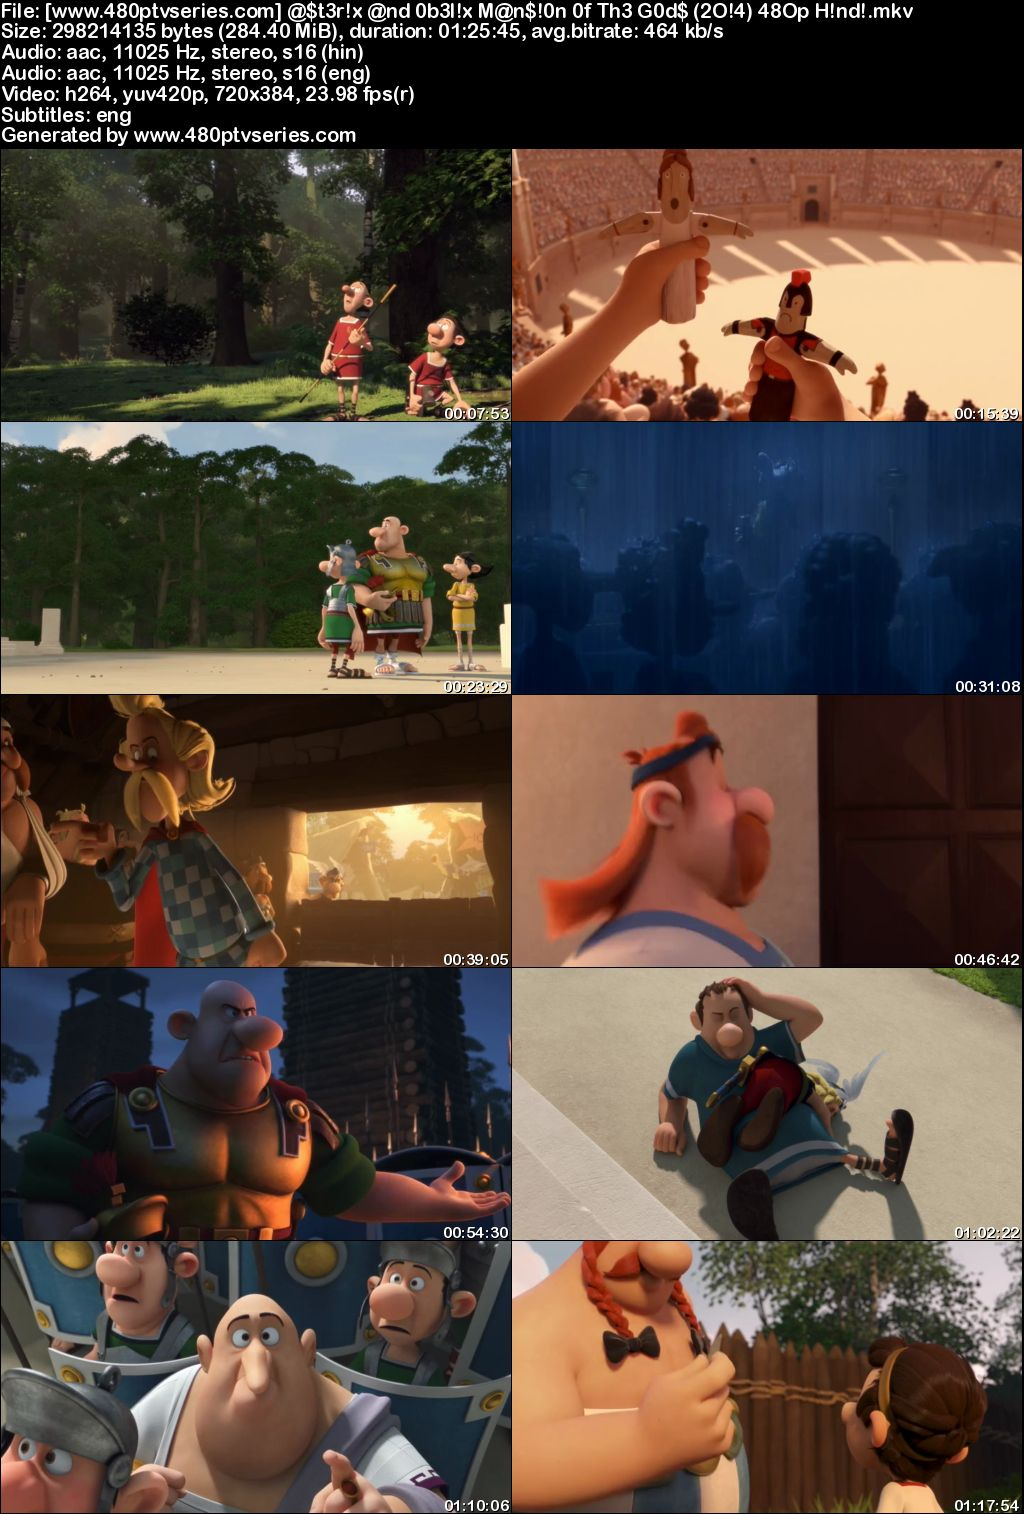 Asterix and Obelix: Mansion of the Gods (2014) 300MB Full Hindi Dual Audio Movie Download 480p Bluray Free Watch Online Full Movie Download Worldfree4u 9xmovies